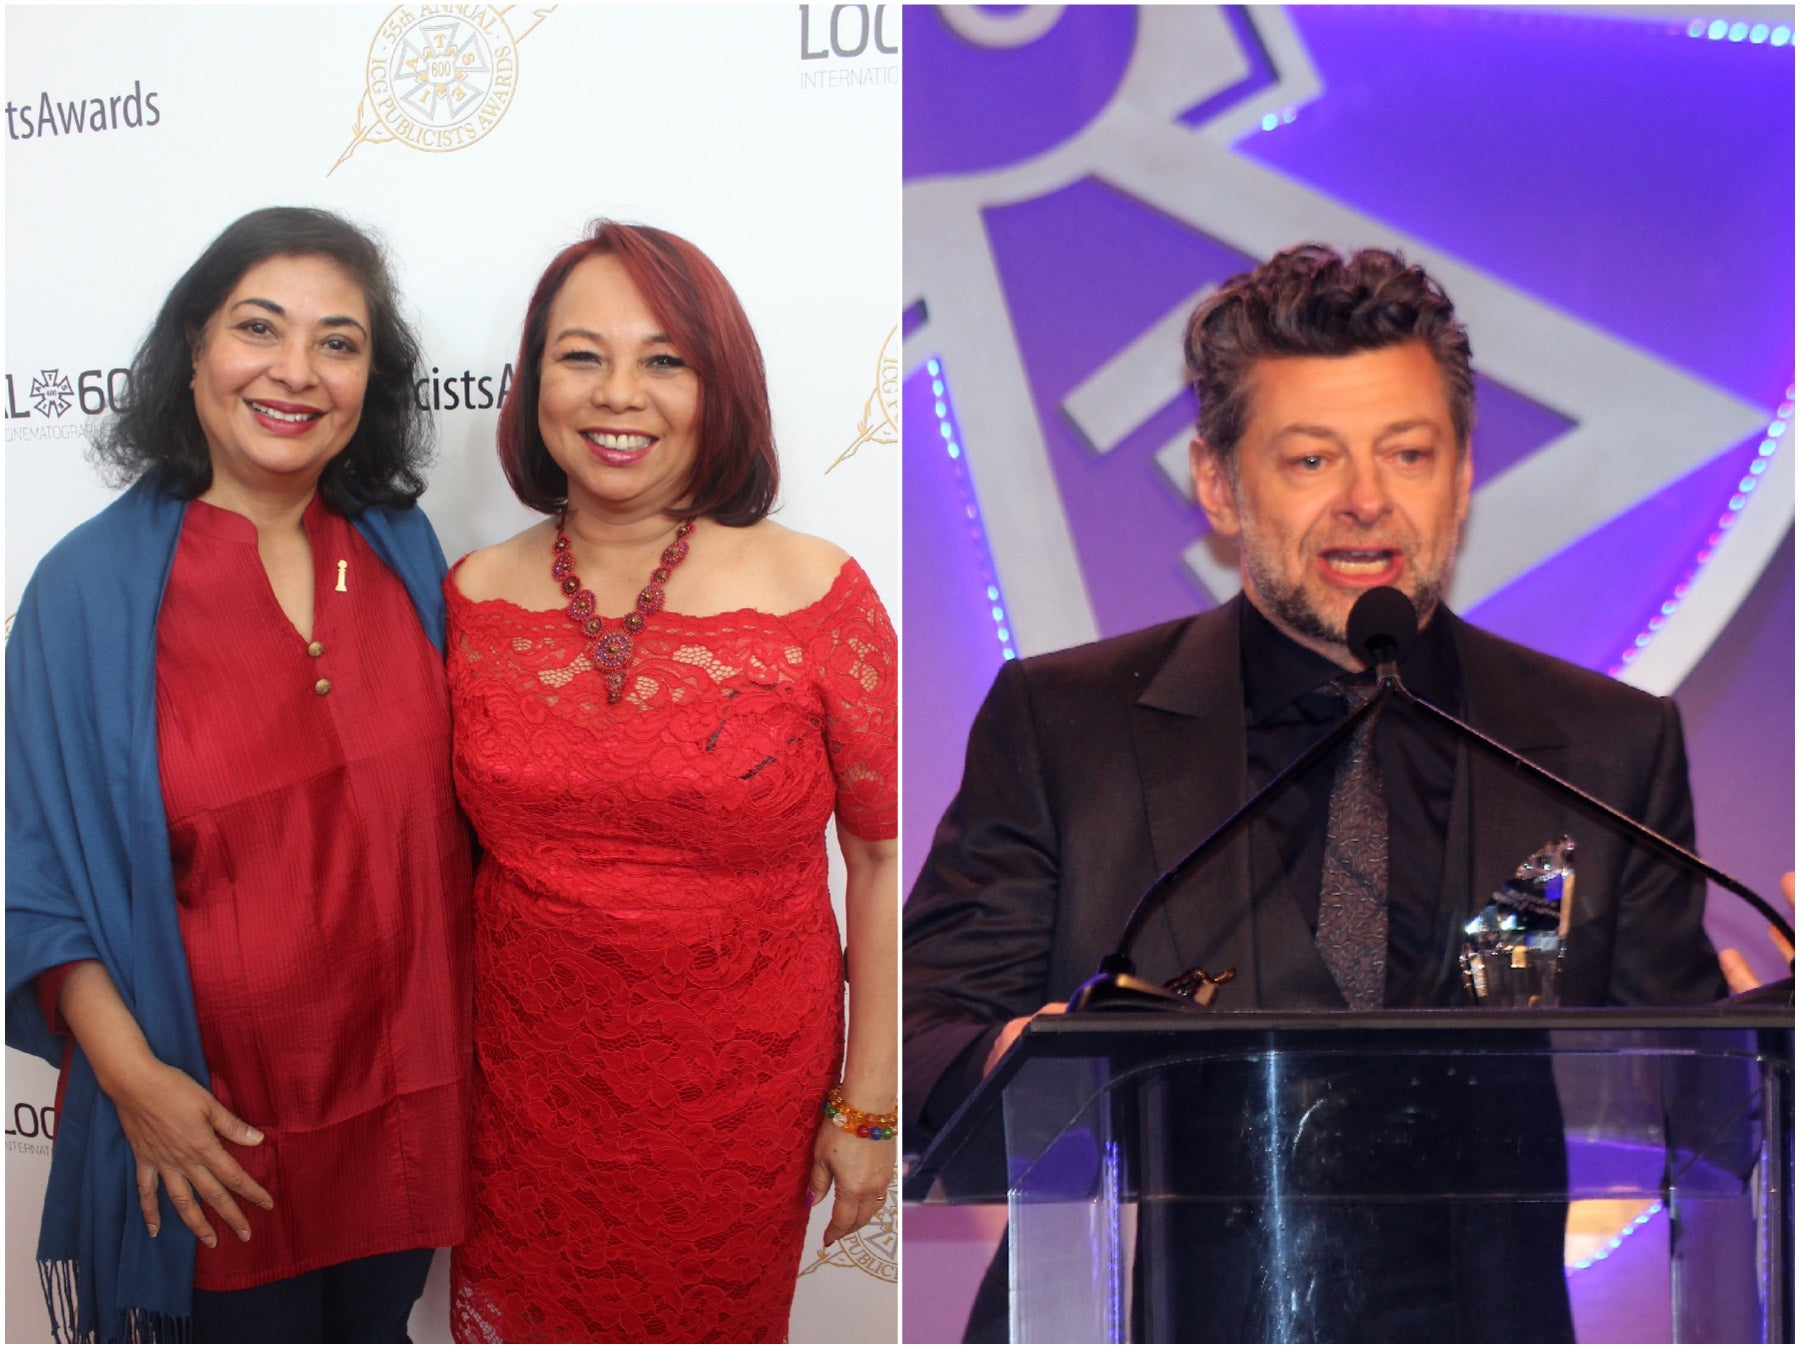 HFPA President Meher Tatna, Janet Nepales and Any Serkis at the 55th Publicists Awards